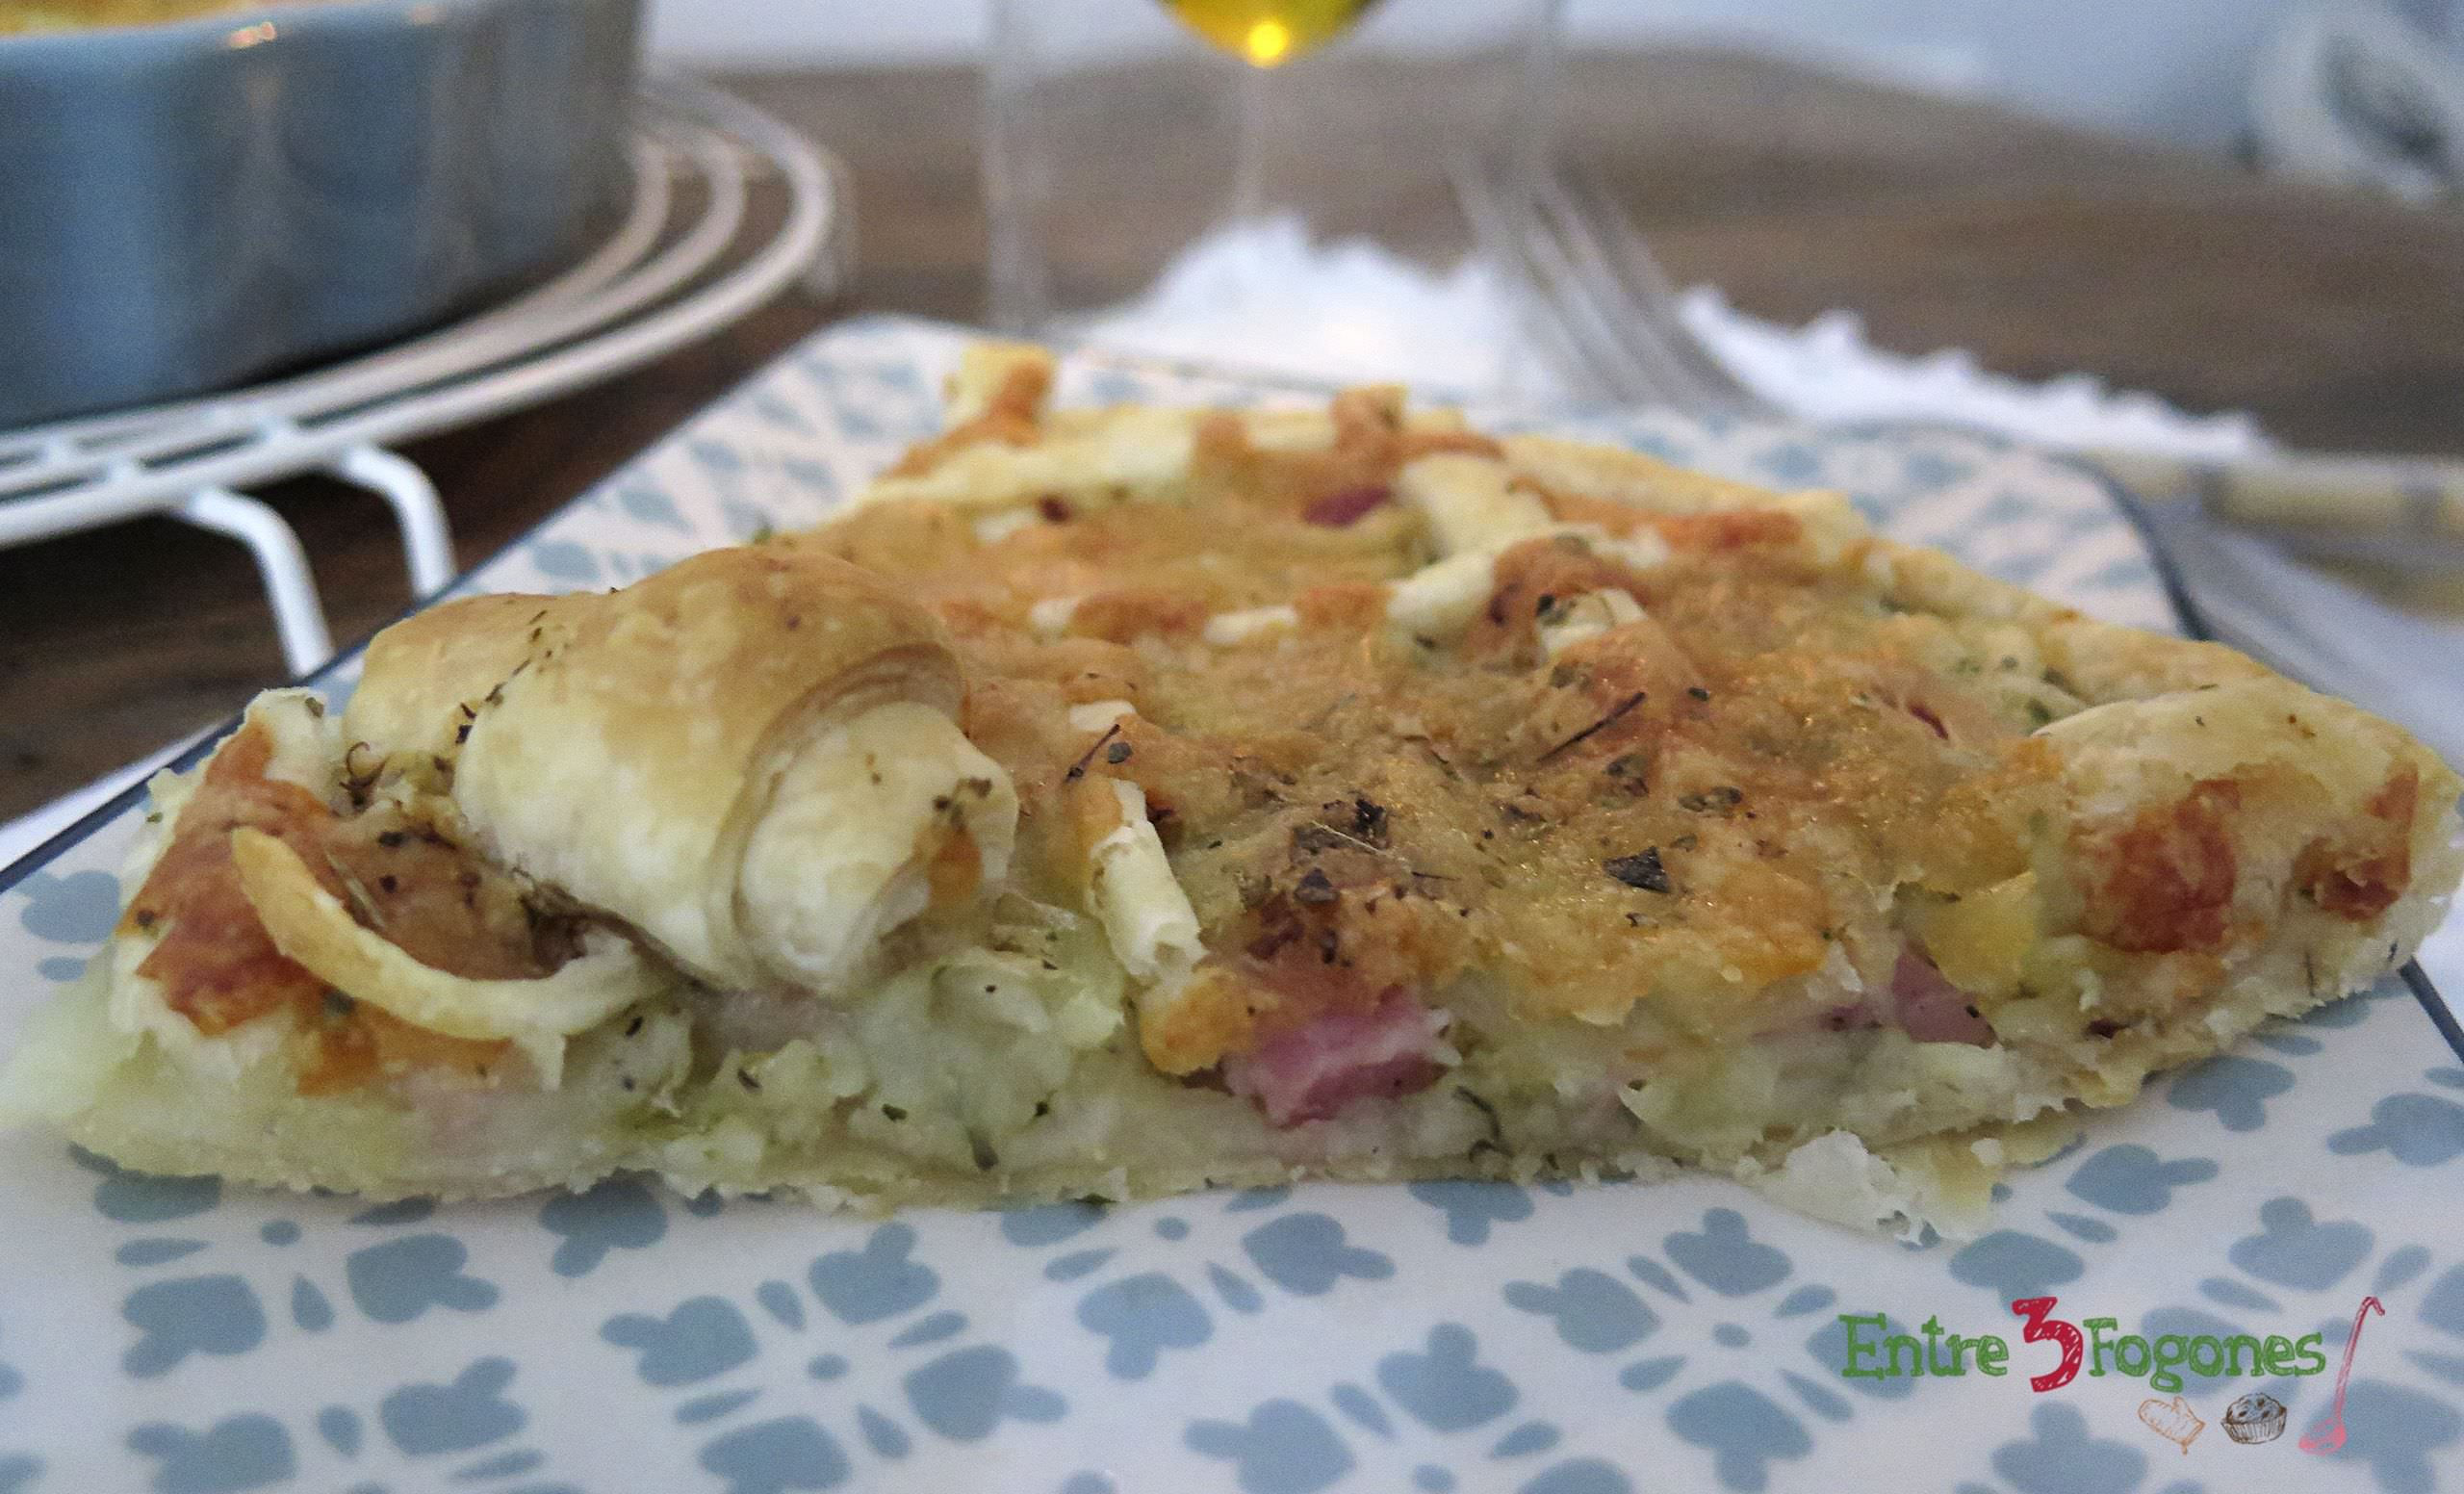 Photo of Crostata de Patatas y Jamón York sobre Hojaldre